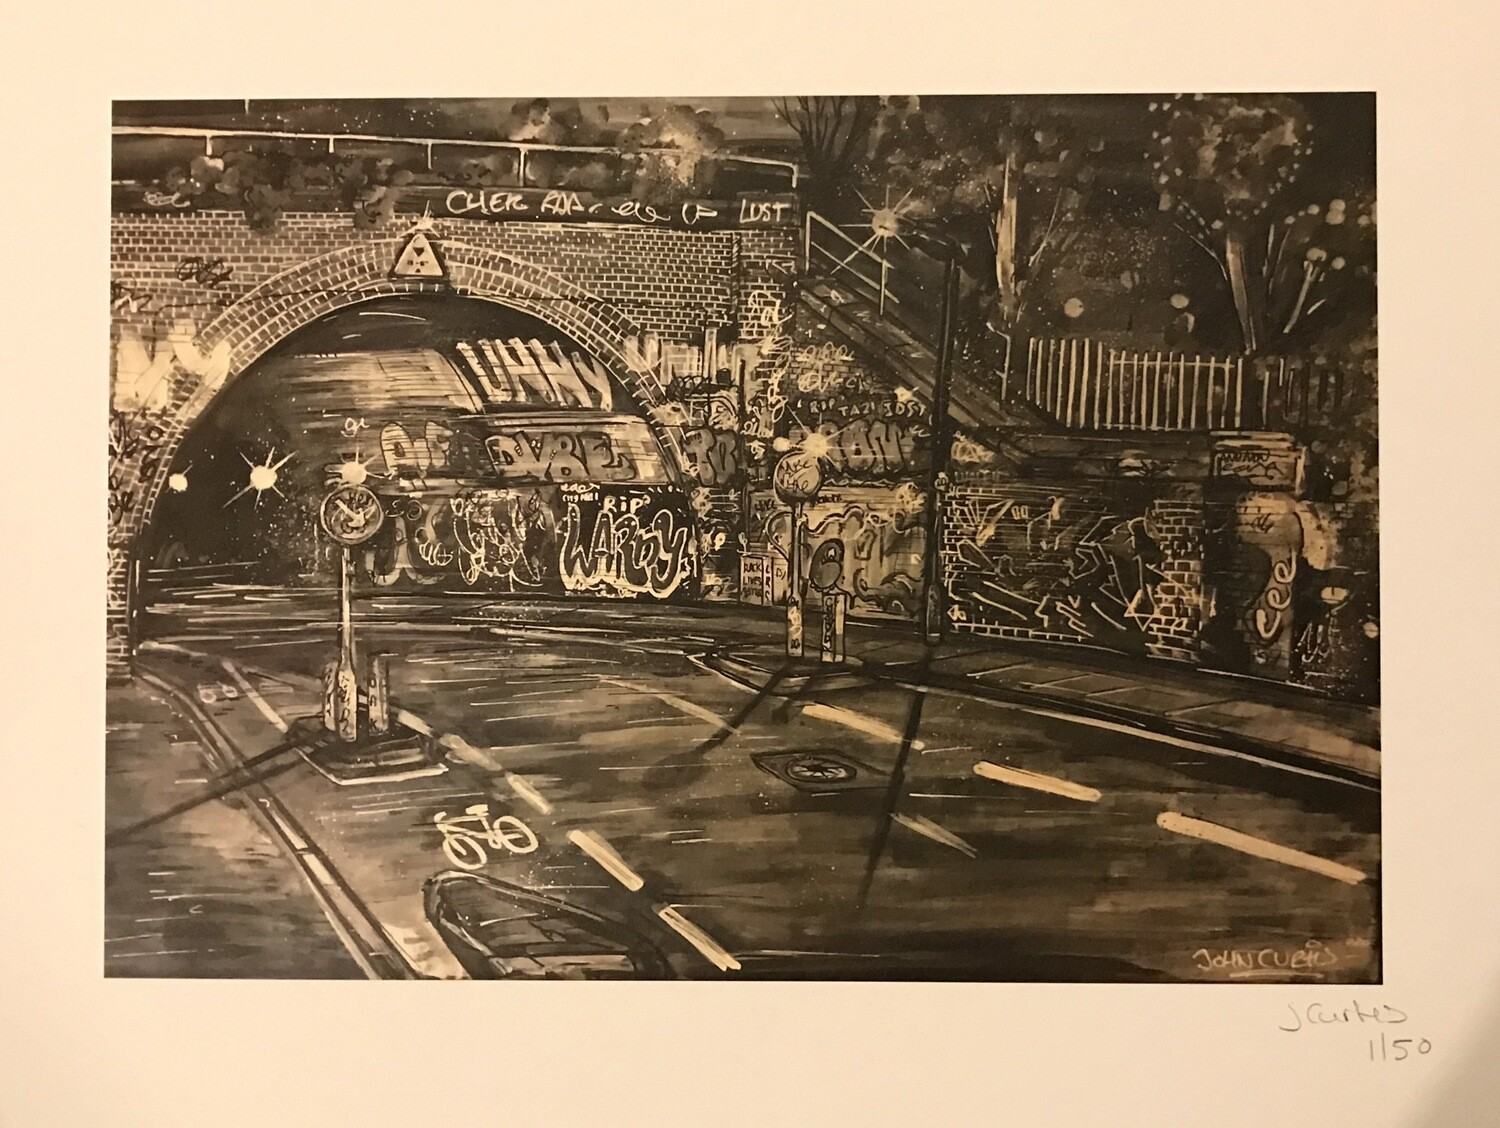 St Werbughs Tunnel - Limited Edition print